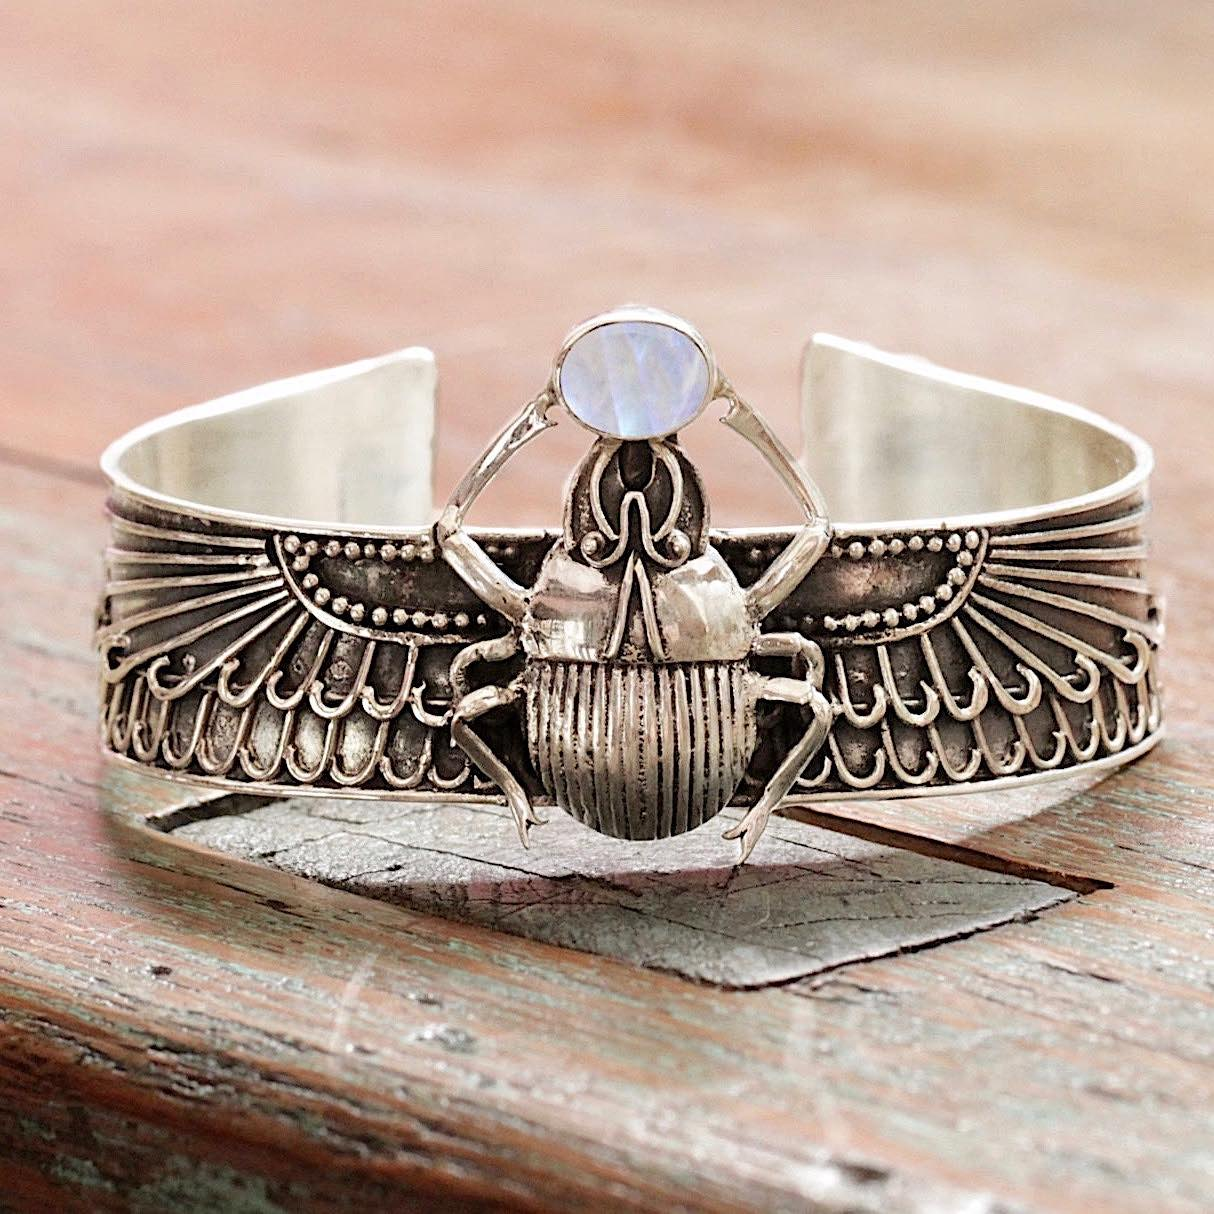 Scarab Cuff Bracelet with Moonstone